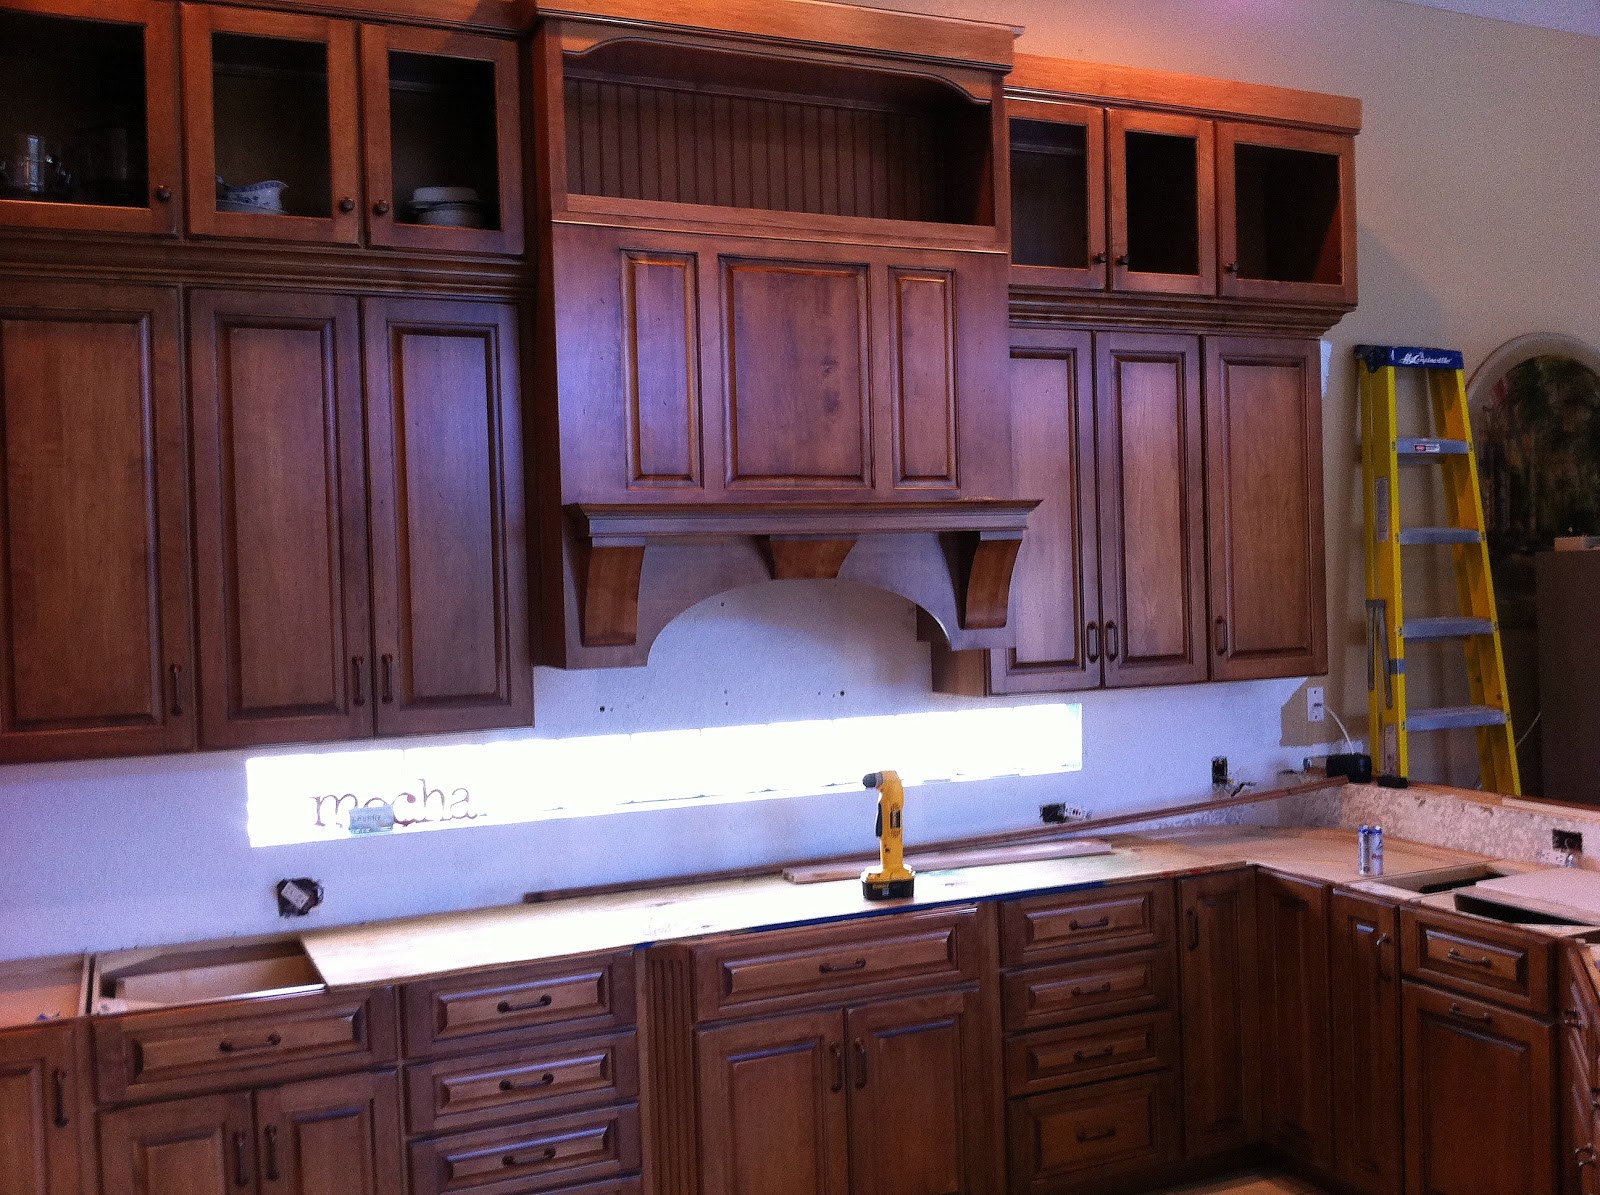 Woodharbor Doors  Cabinetry, Inc. | Cabinetry and Doors